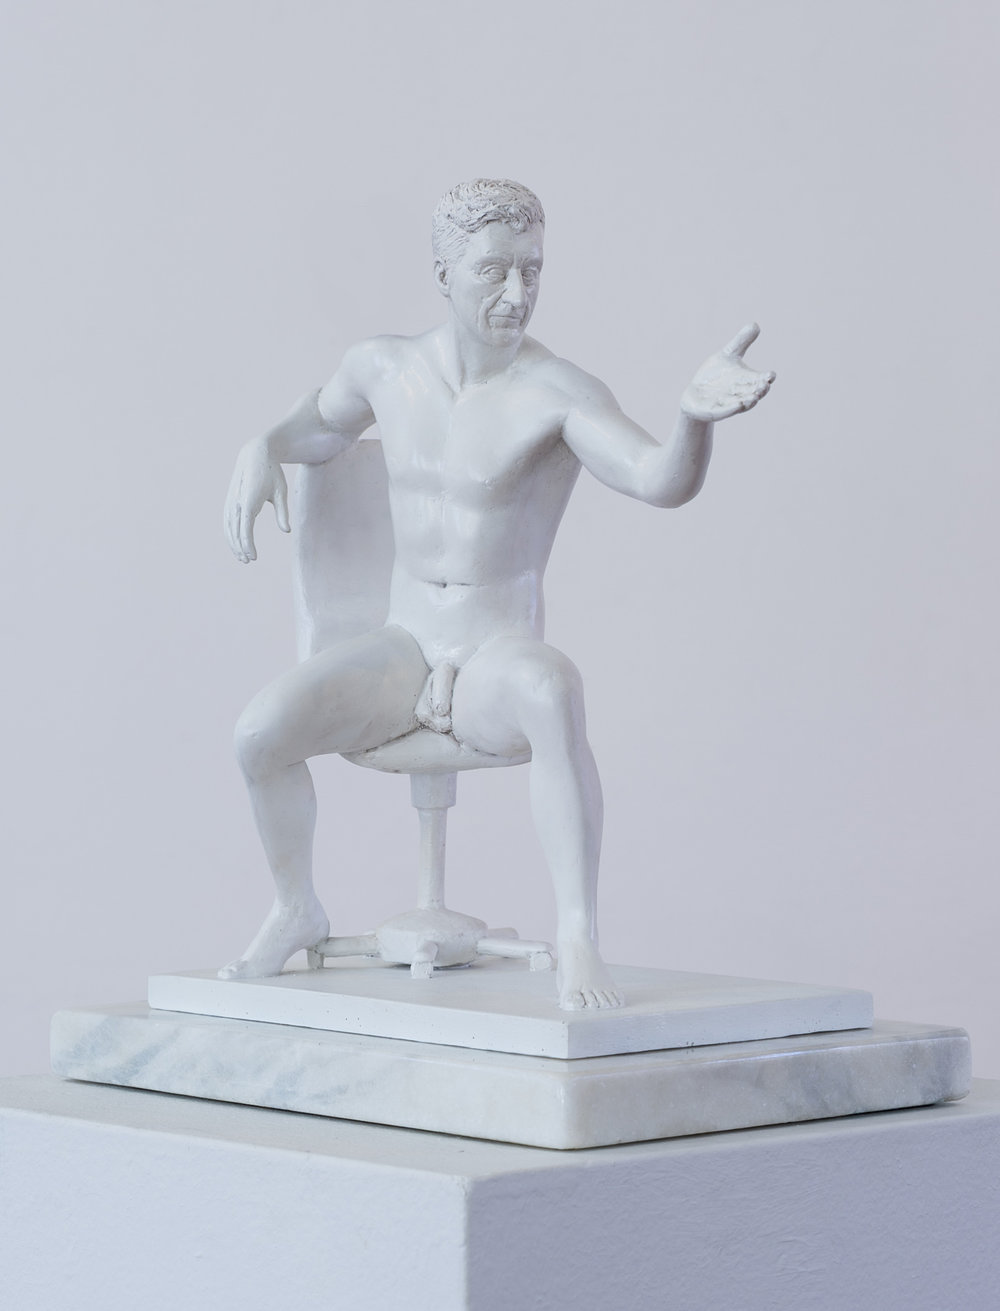 Jonathan van der Walt  Striving for the Idea(l) - Maurizio Cattelan  Resin, edition of 18  34 x 21 x 35 cm